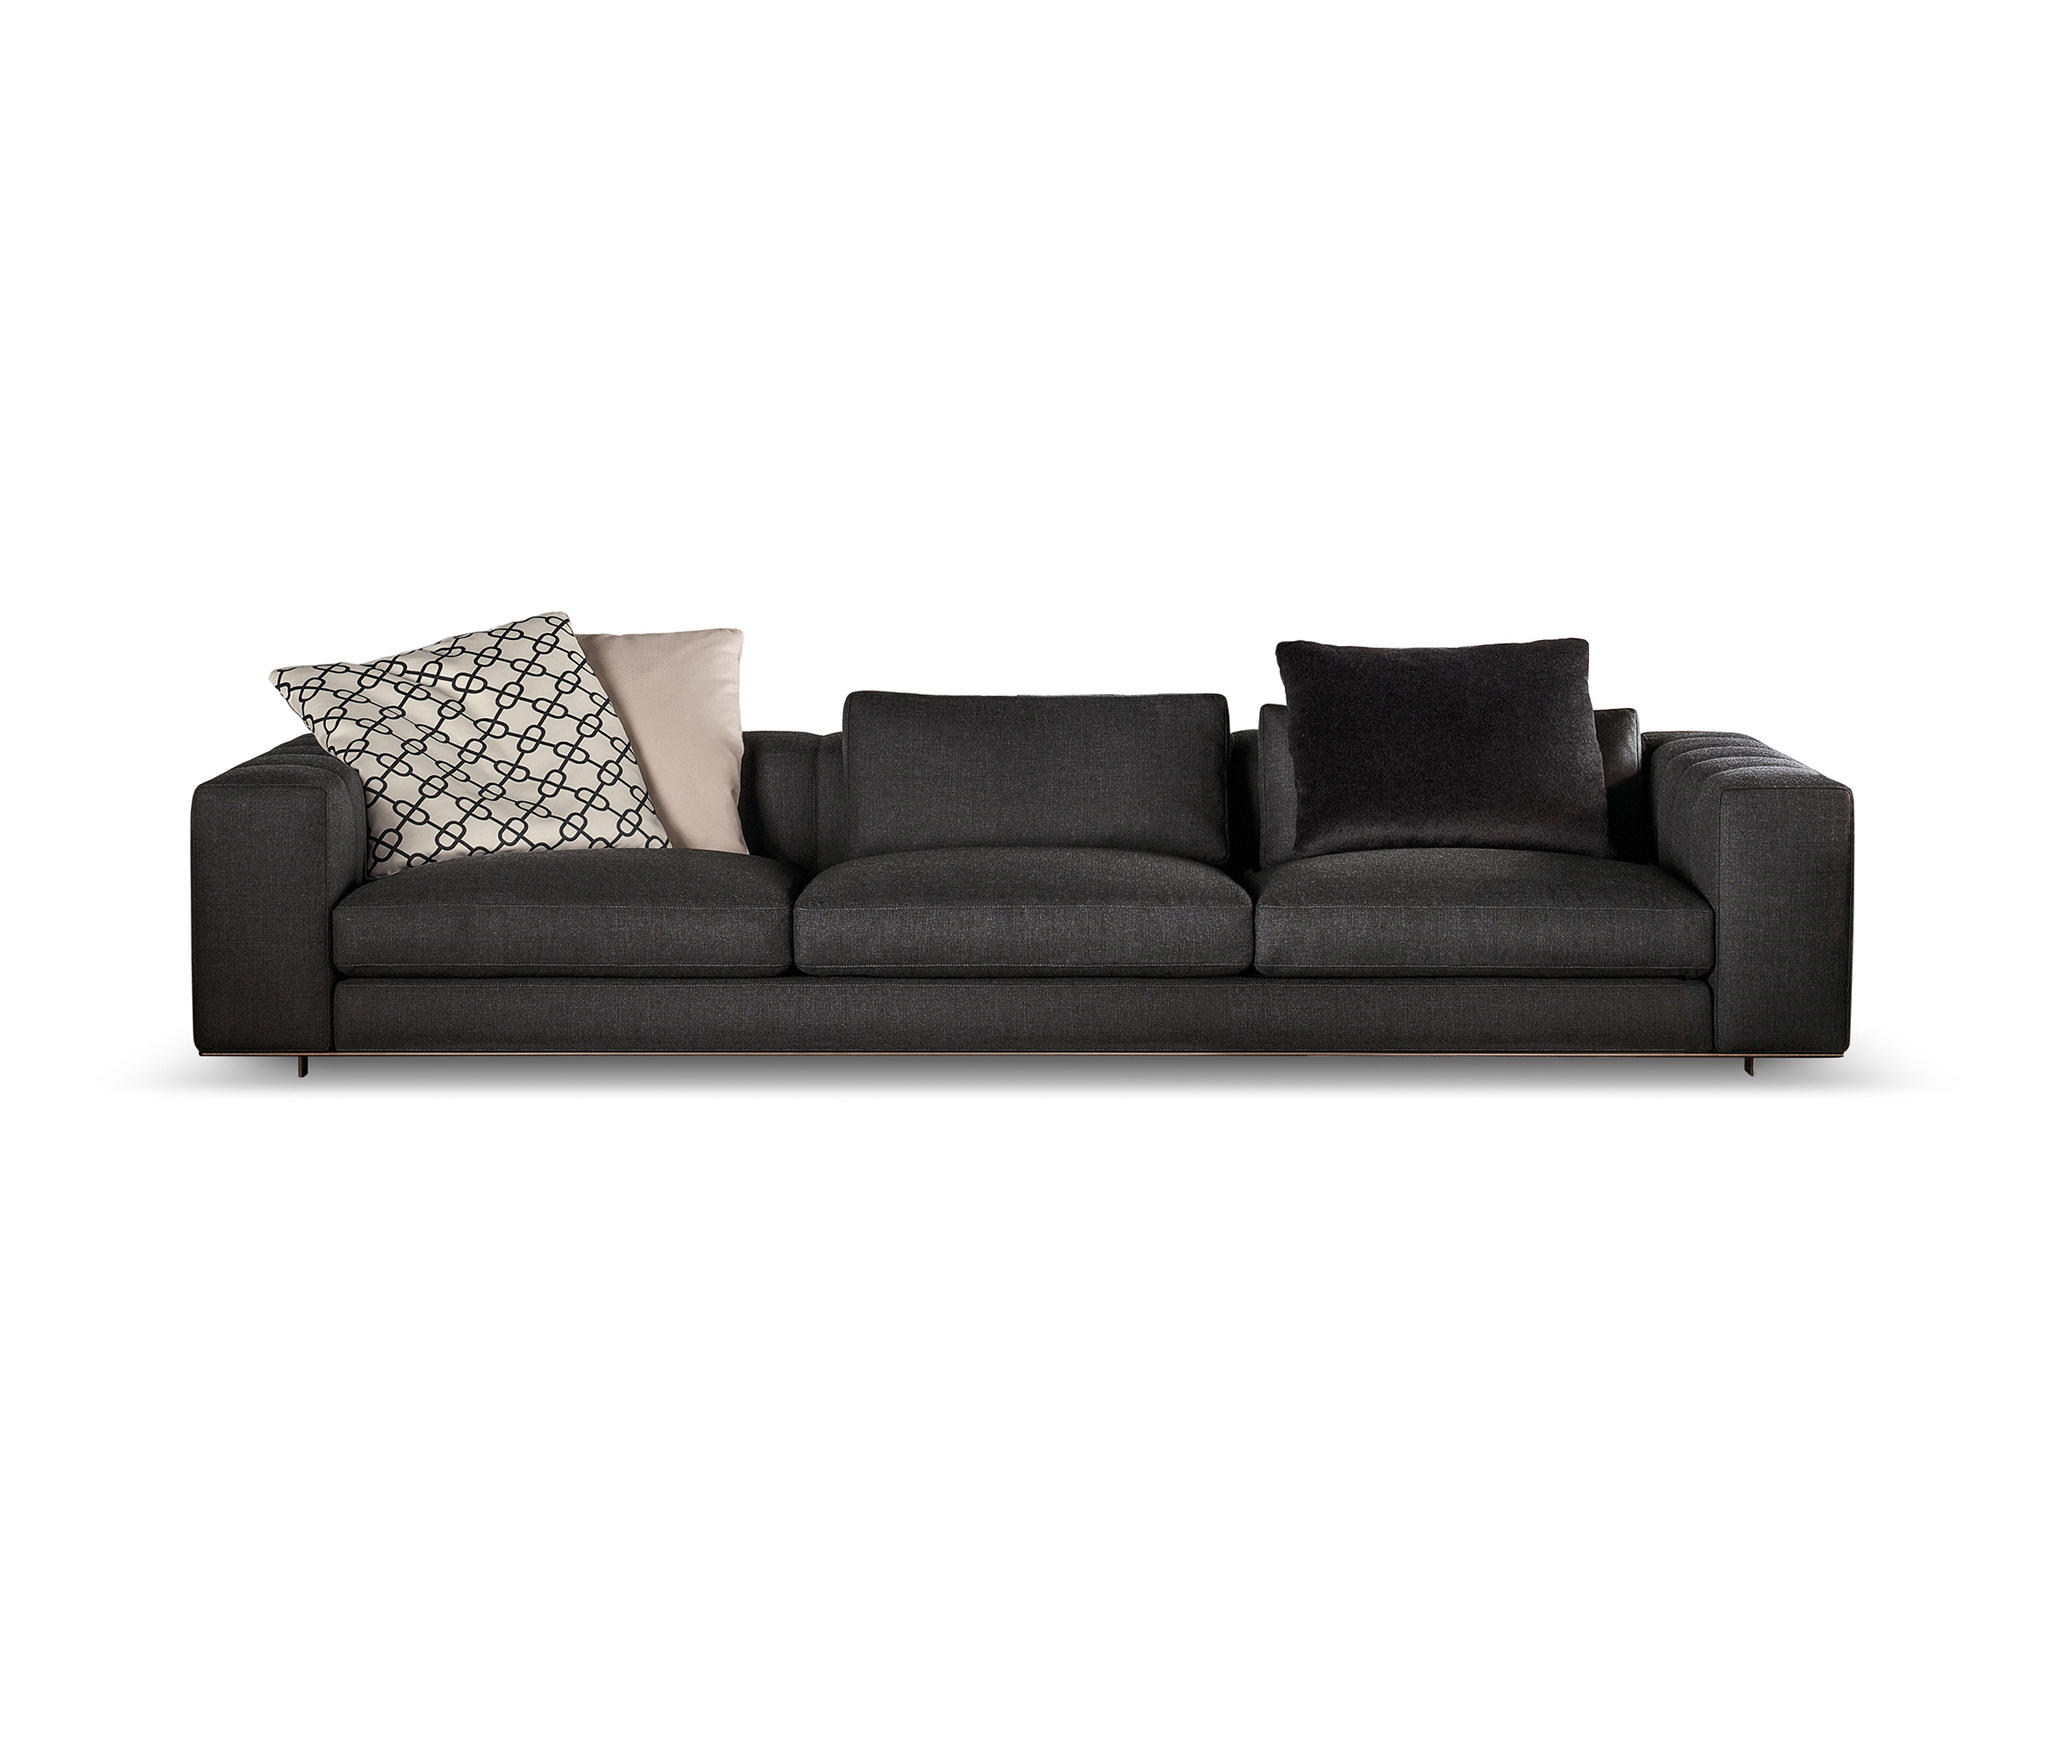 Poltrone E Sofa Gravellona Toce freeman duvet sofa & designer furniture | architonic